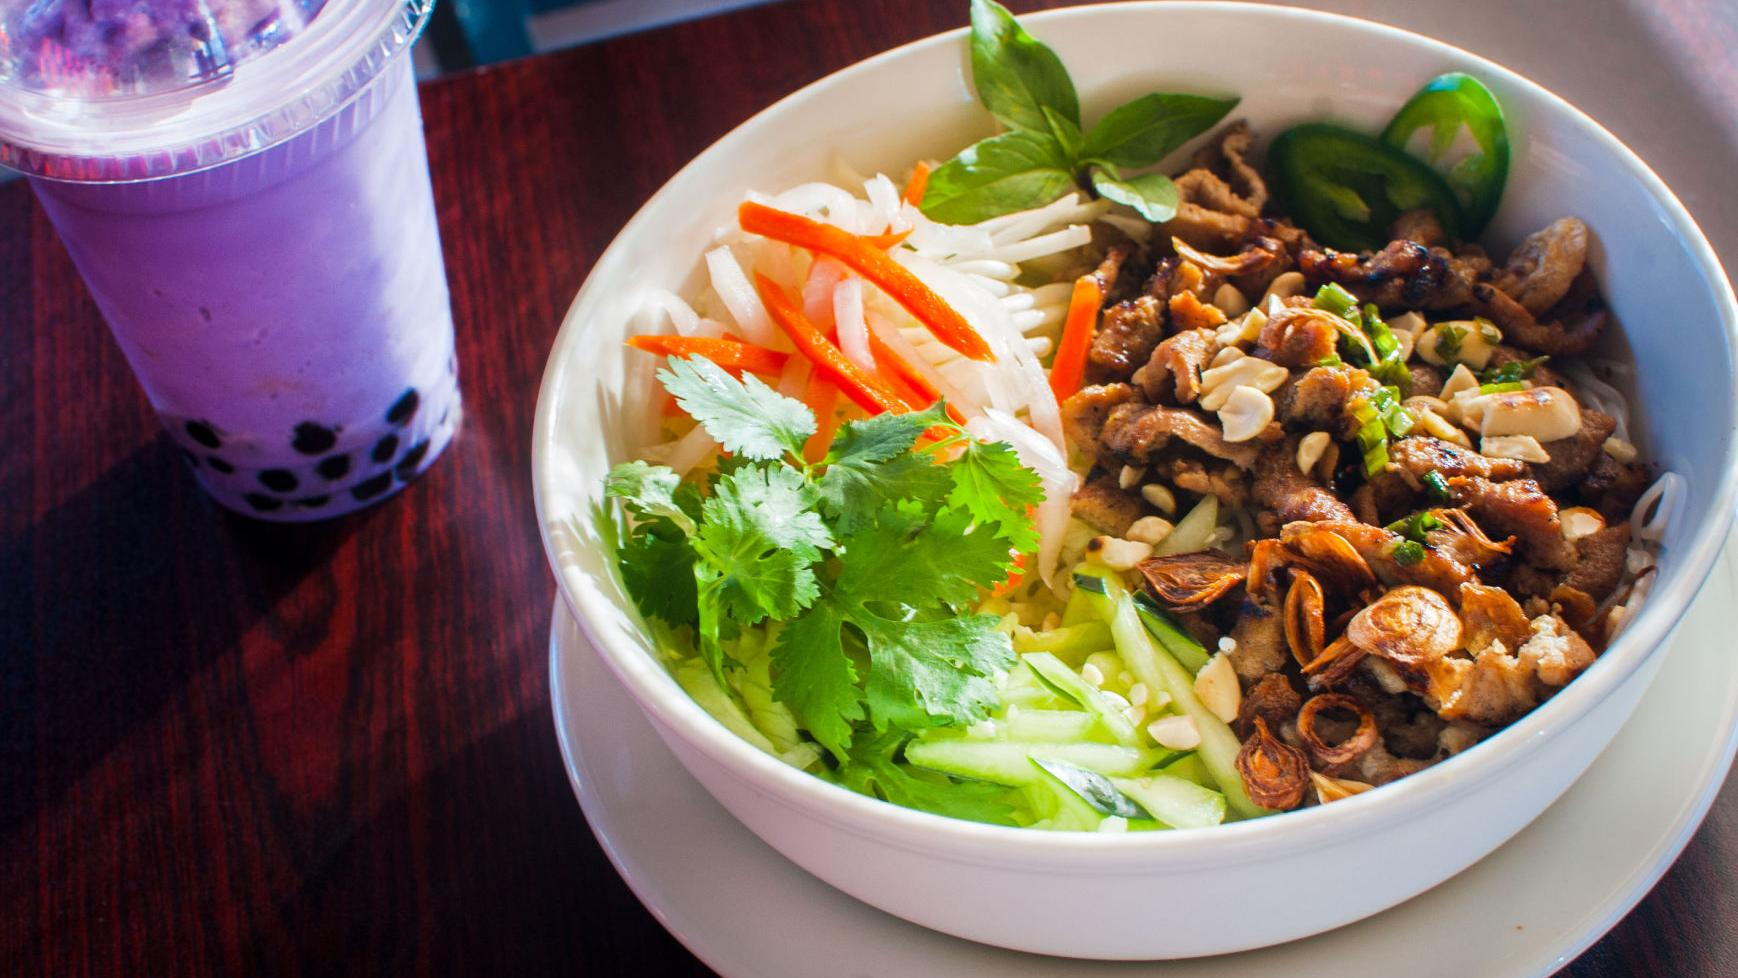 Sip boba tea and slurp noodles at this new Vietnamese spot